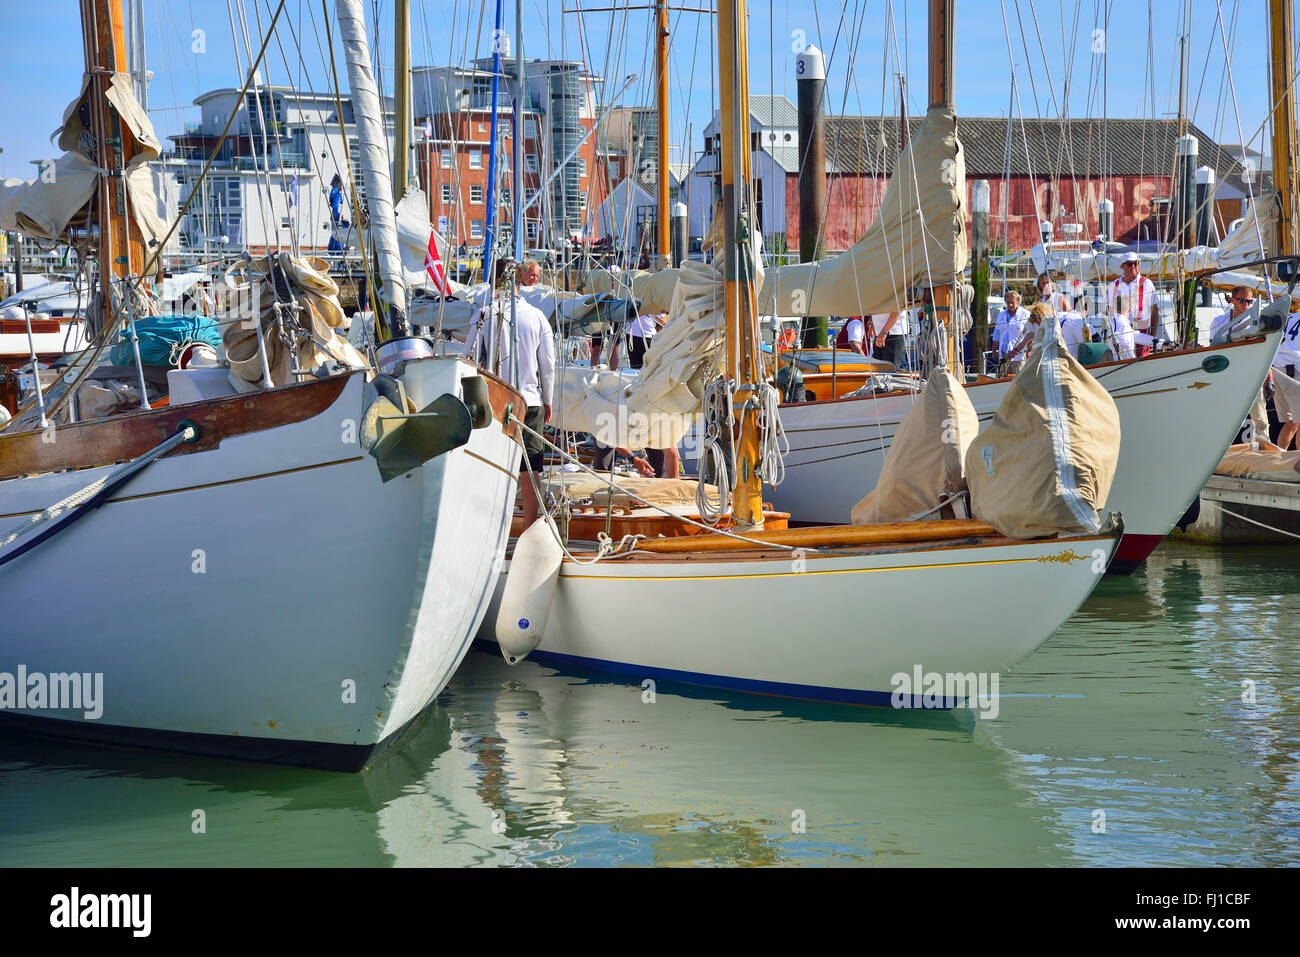 Beautiful wooden traditional classic yachts moored in Cowes marina after racing during Classic Week, Cowes, Isle - Stock Image